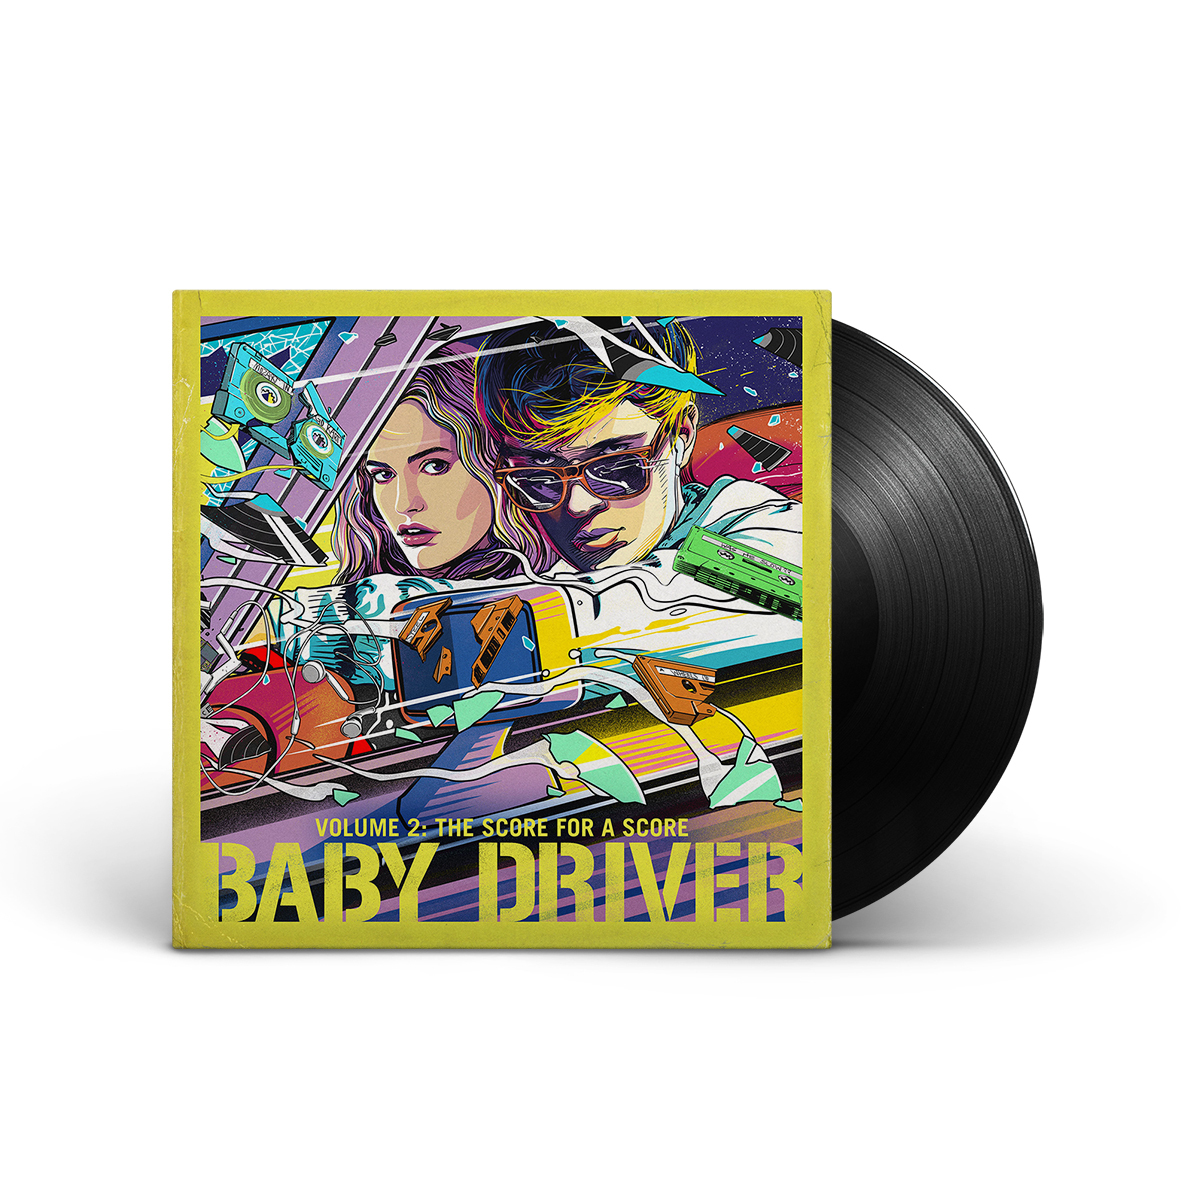 Baby Driver Volume 2: The Score for a Score LP